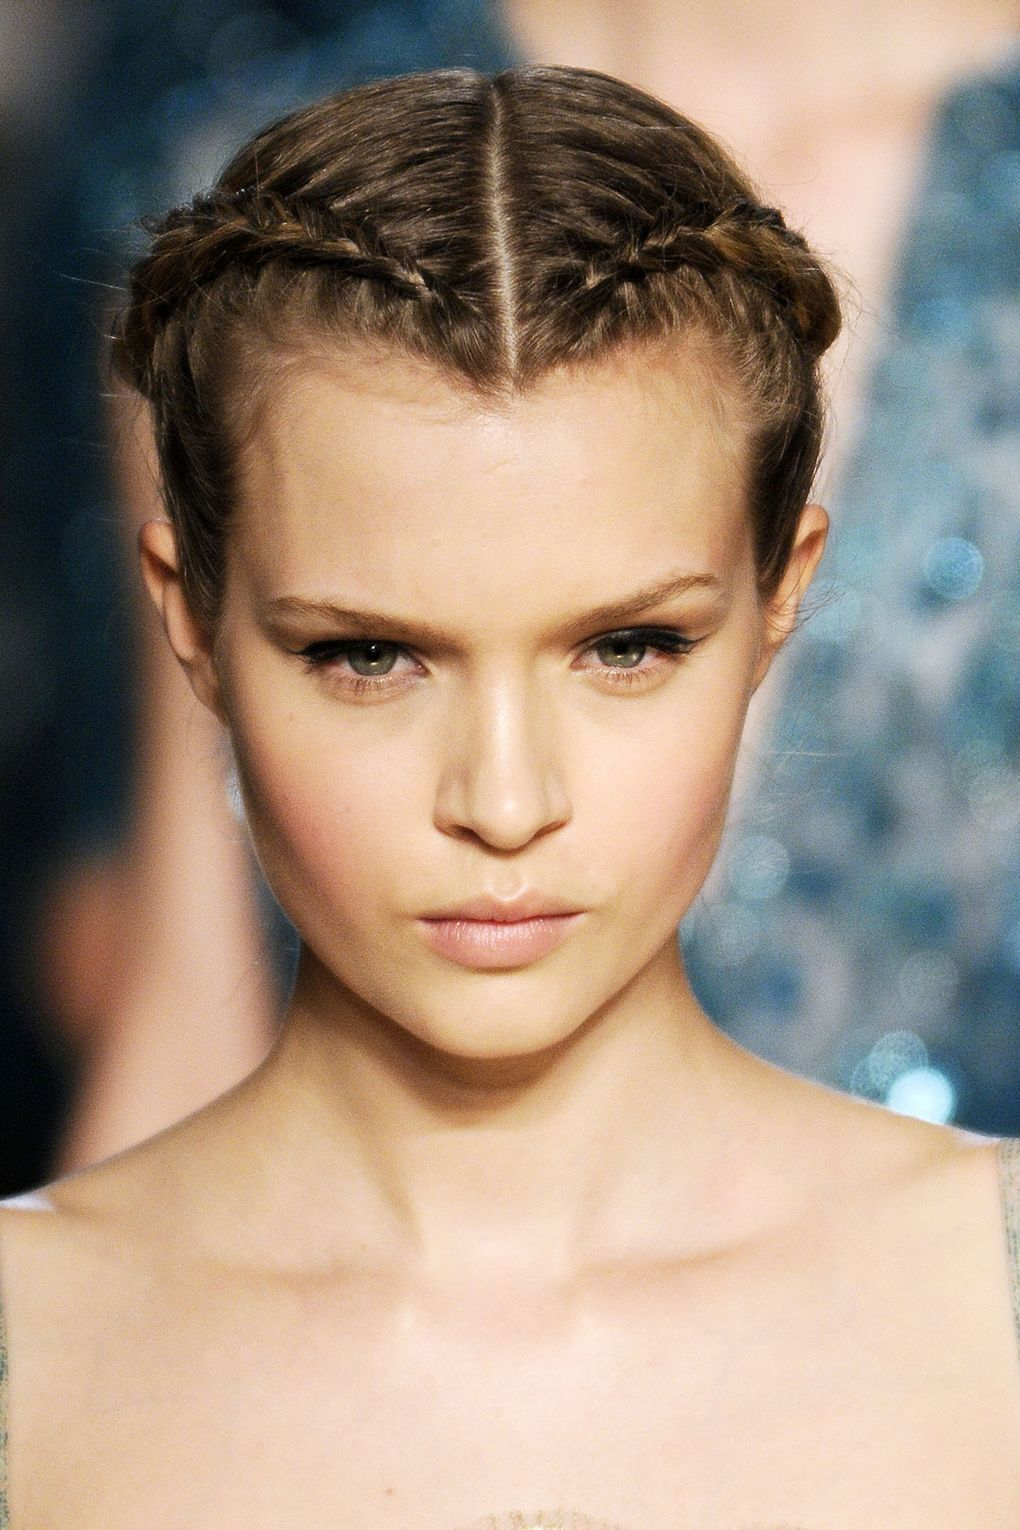 Double side haircut for boys online hairstyle changer for women  braided hairstyless  pinterest